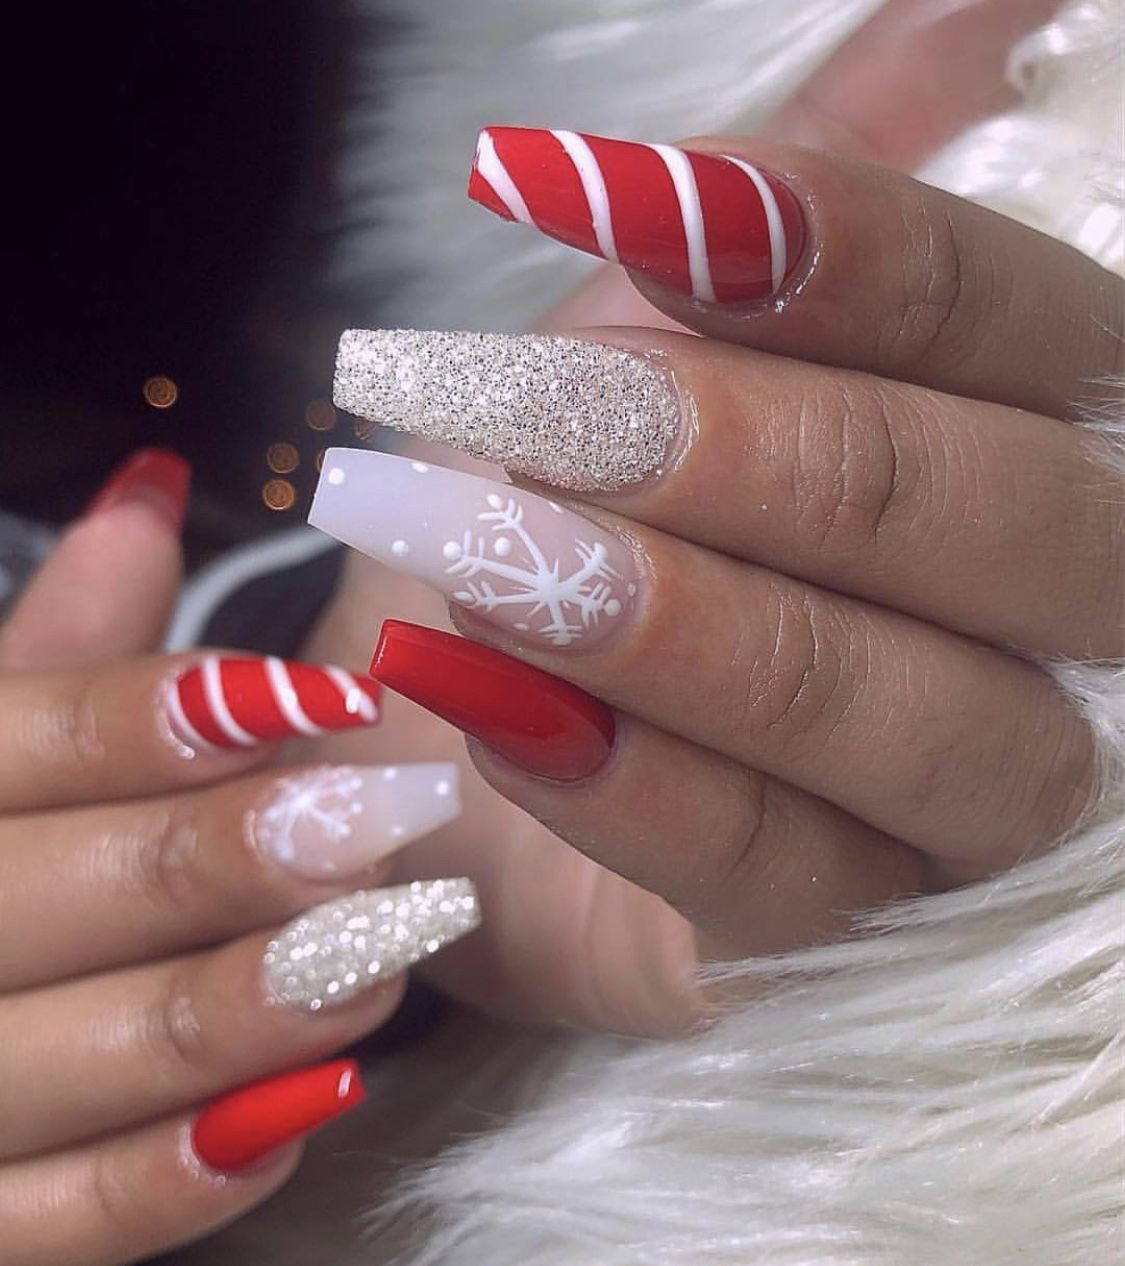 Pin by cnyomi on nails Coffin nails designs, Cute